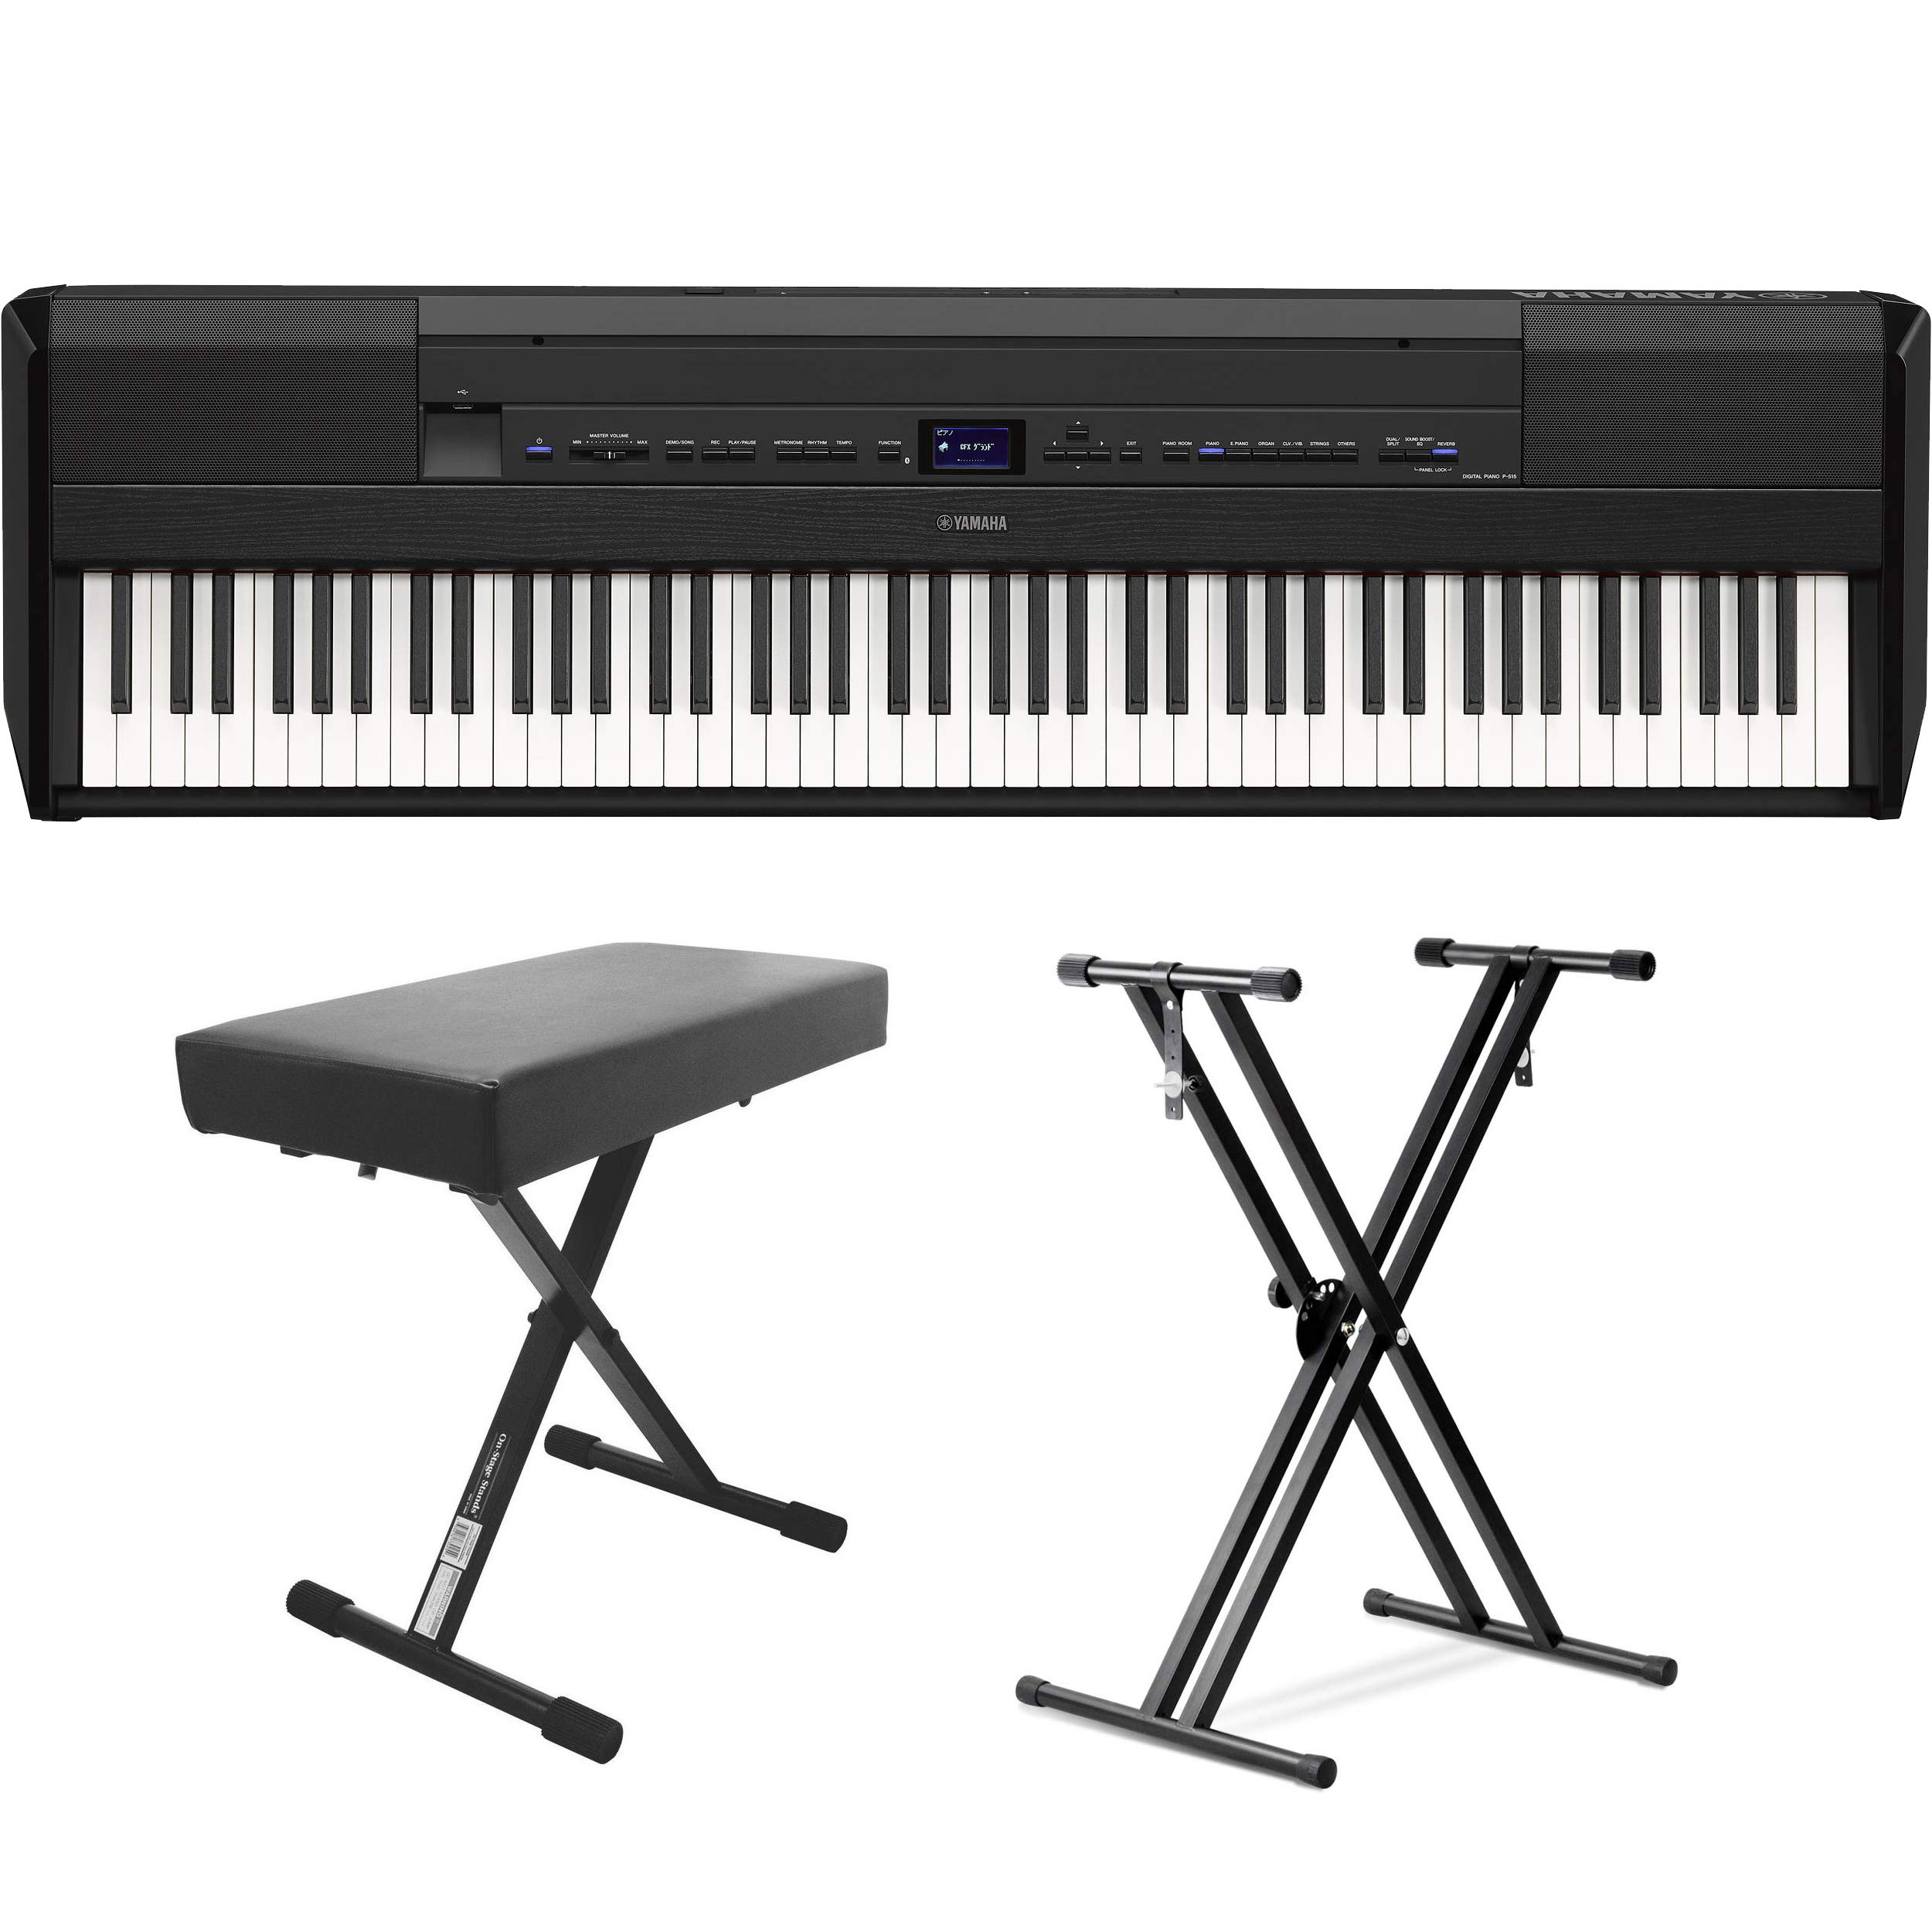 Yamaha P-515 88-Key Portable Digital Piano (with double braced stand and bench) by YamahaBundle